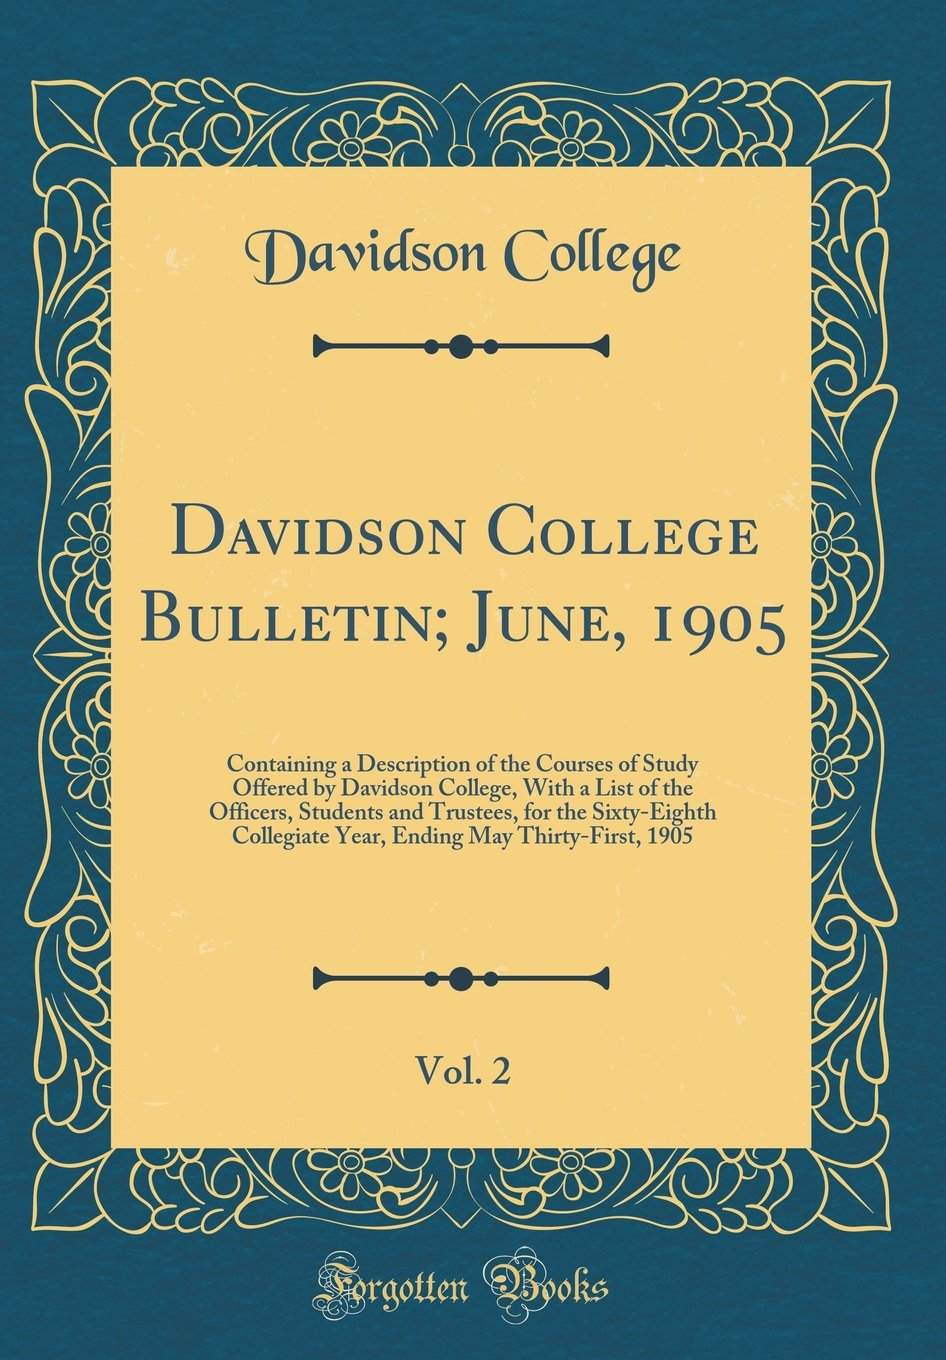 Davidson College Bulletin; June, 1905, Vol. 2: Containing a Description of the Courses of Study Offered by Davidson College, with a List of the ... Year, Ending May Thirty-First, 1905 pdf